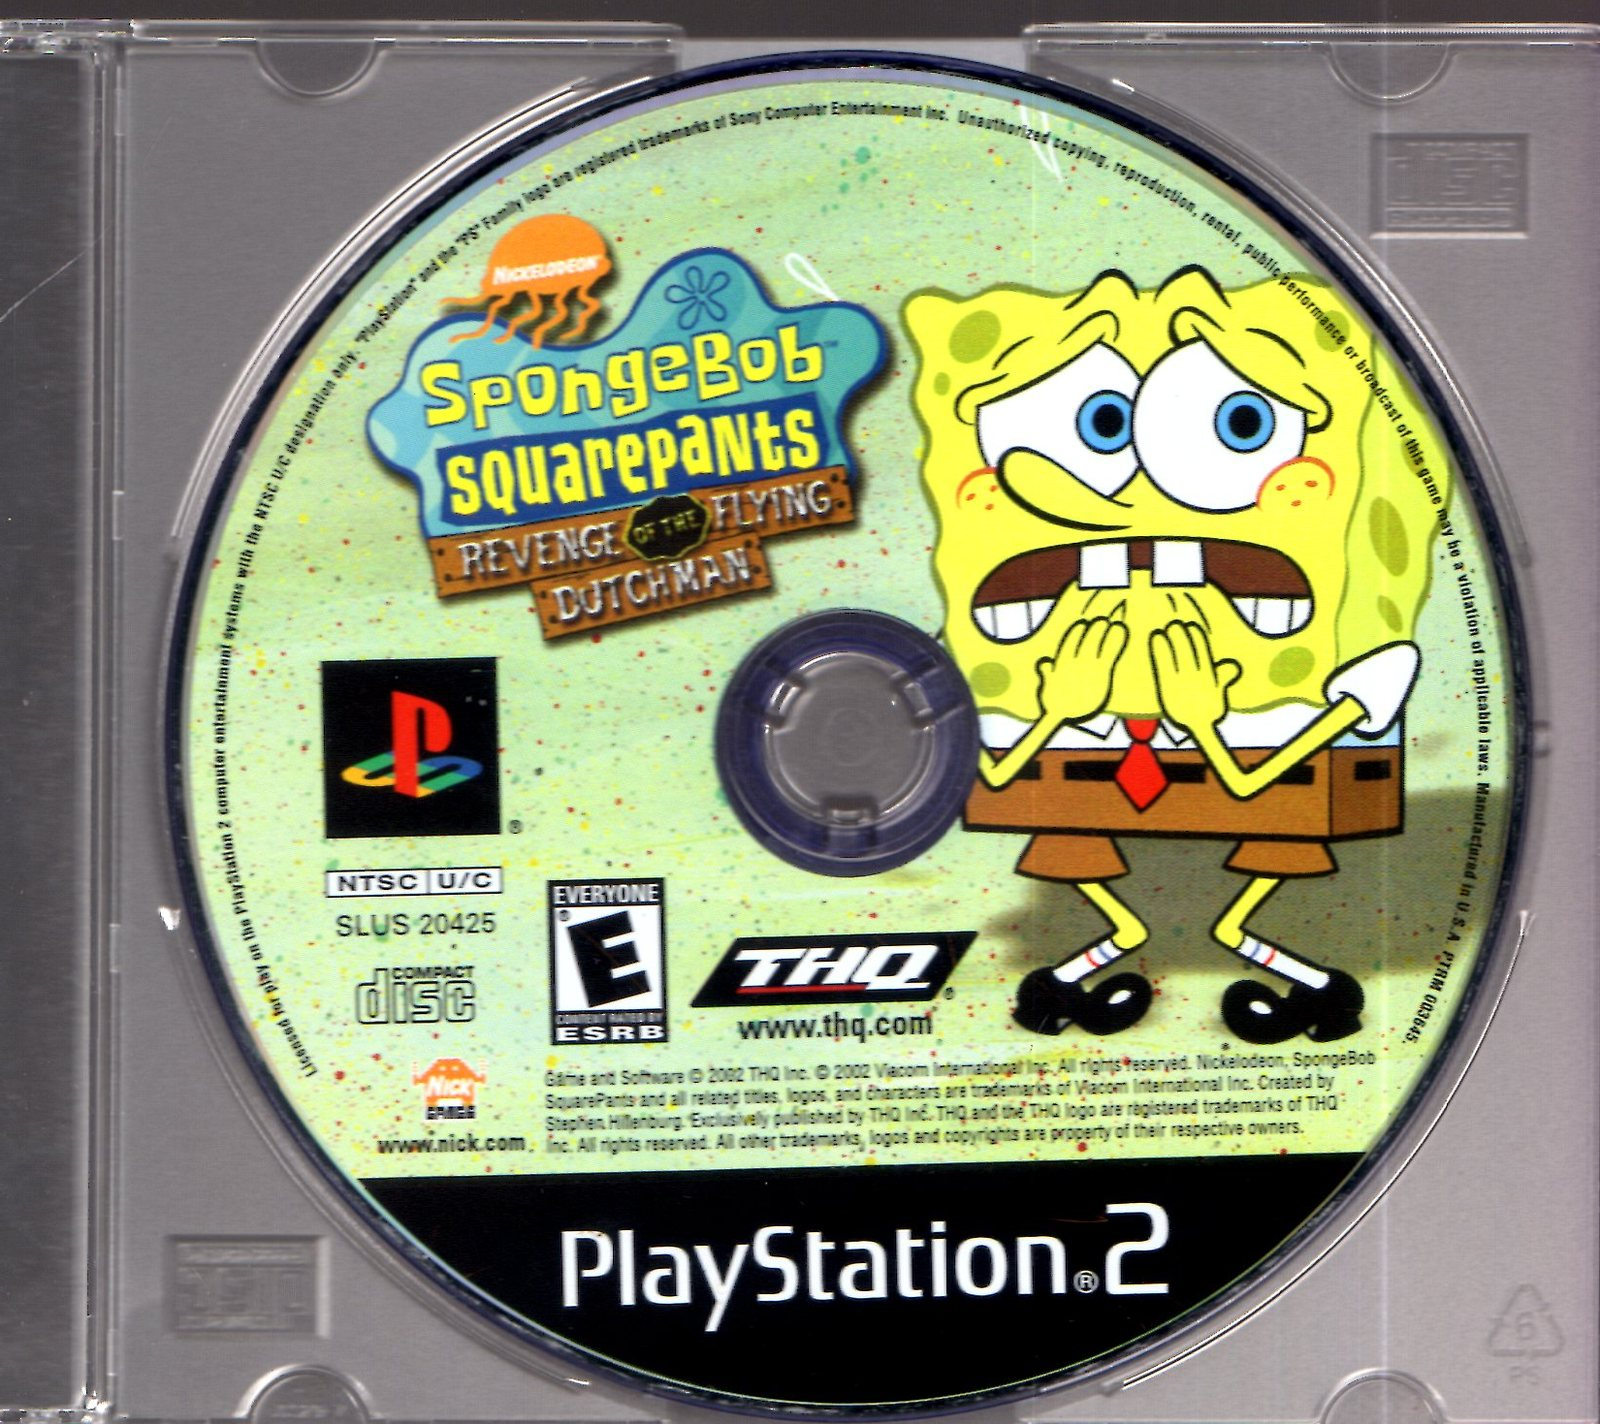 PlayStation 2 - Spongebob Squarepants - Revenge Of The Flying Dutchman